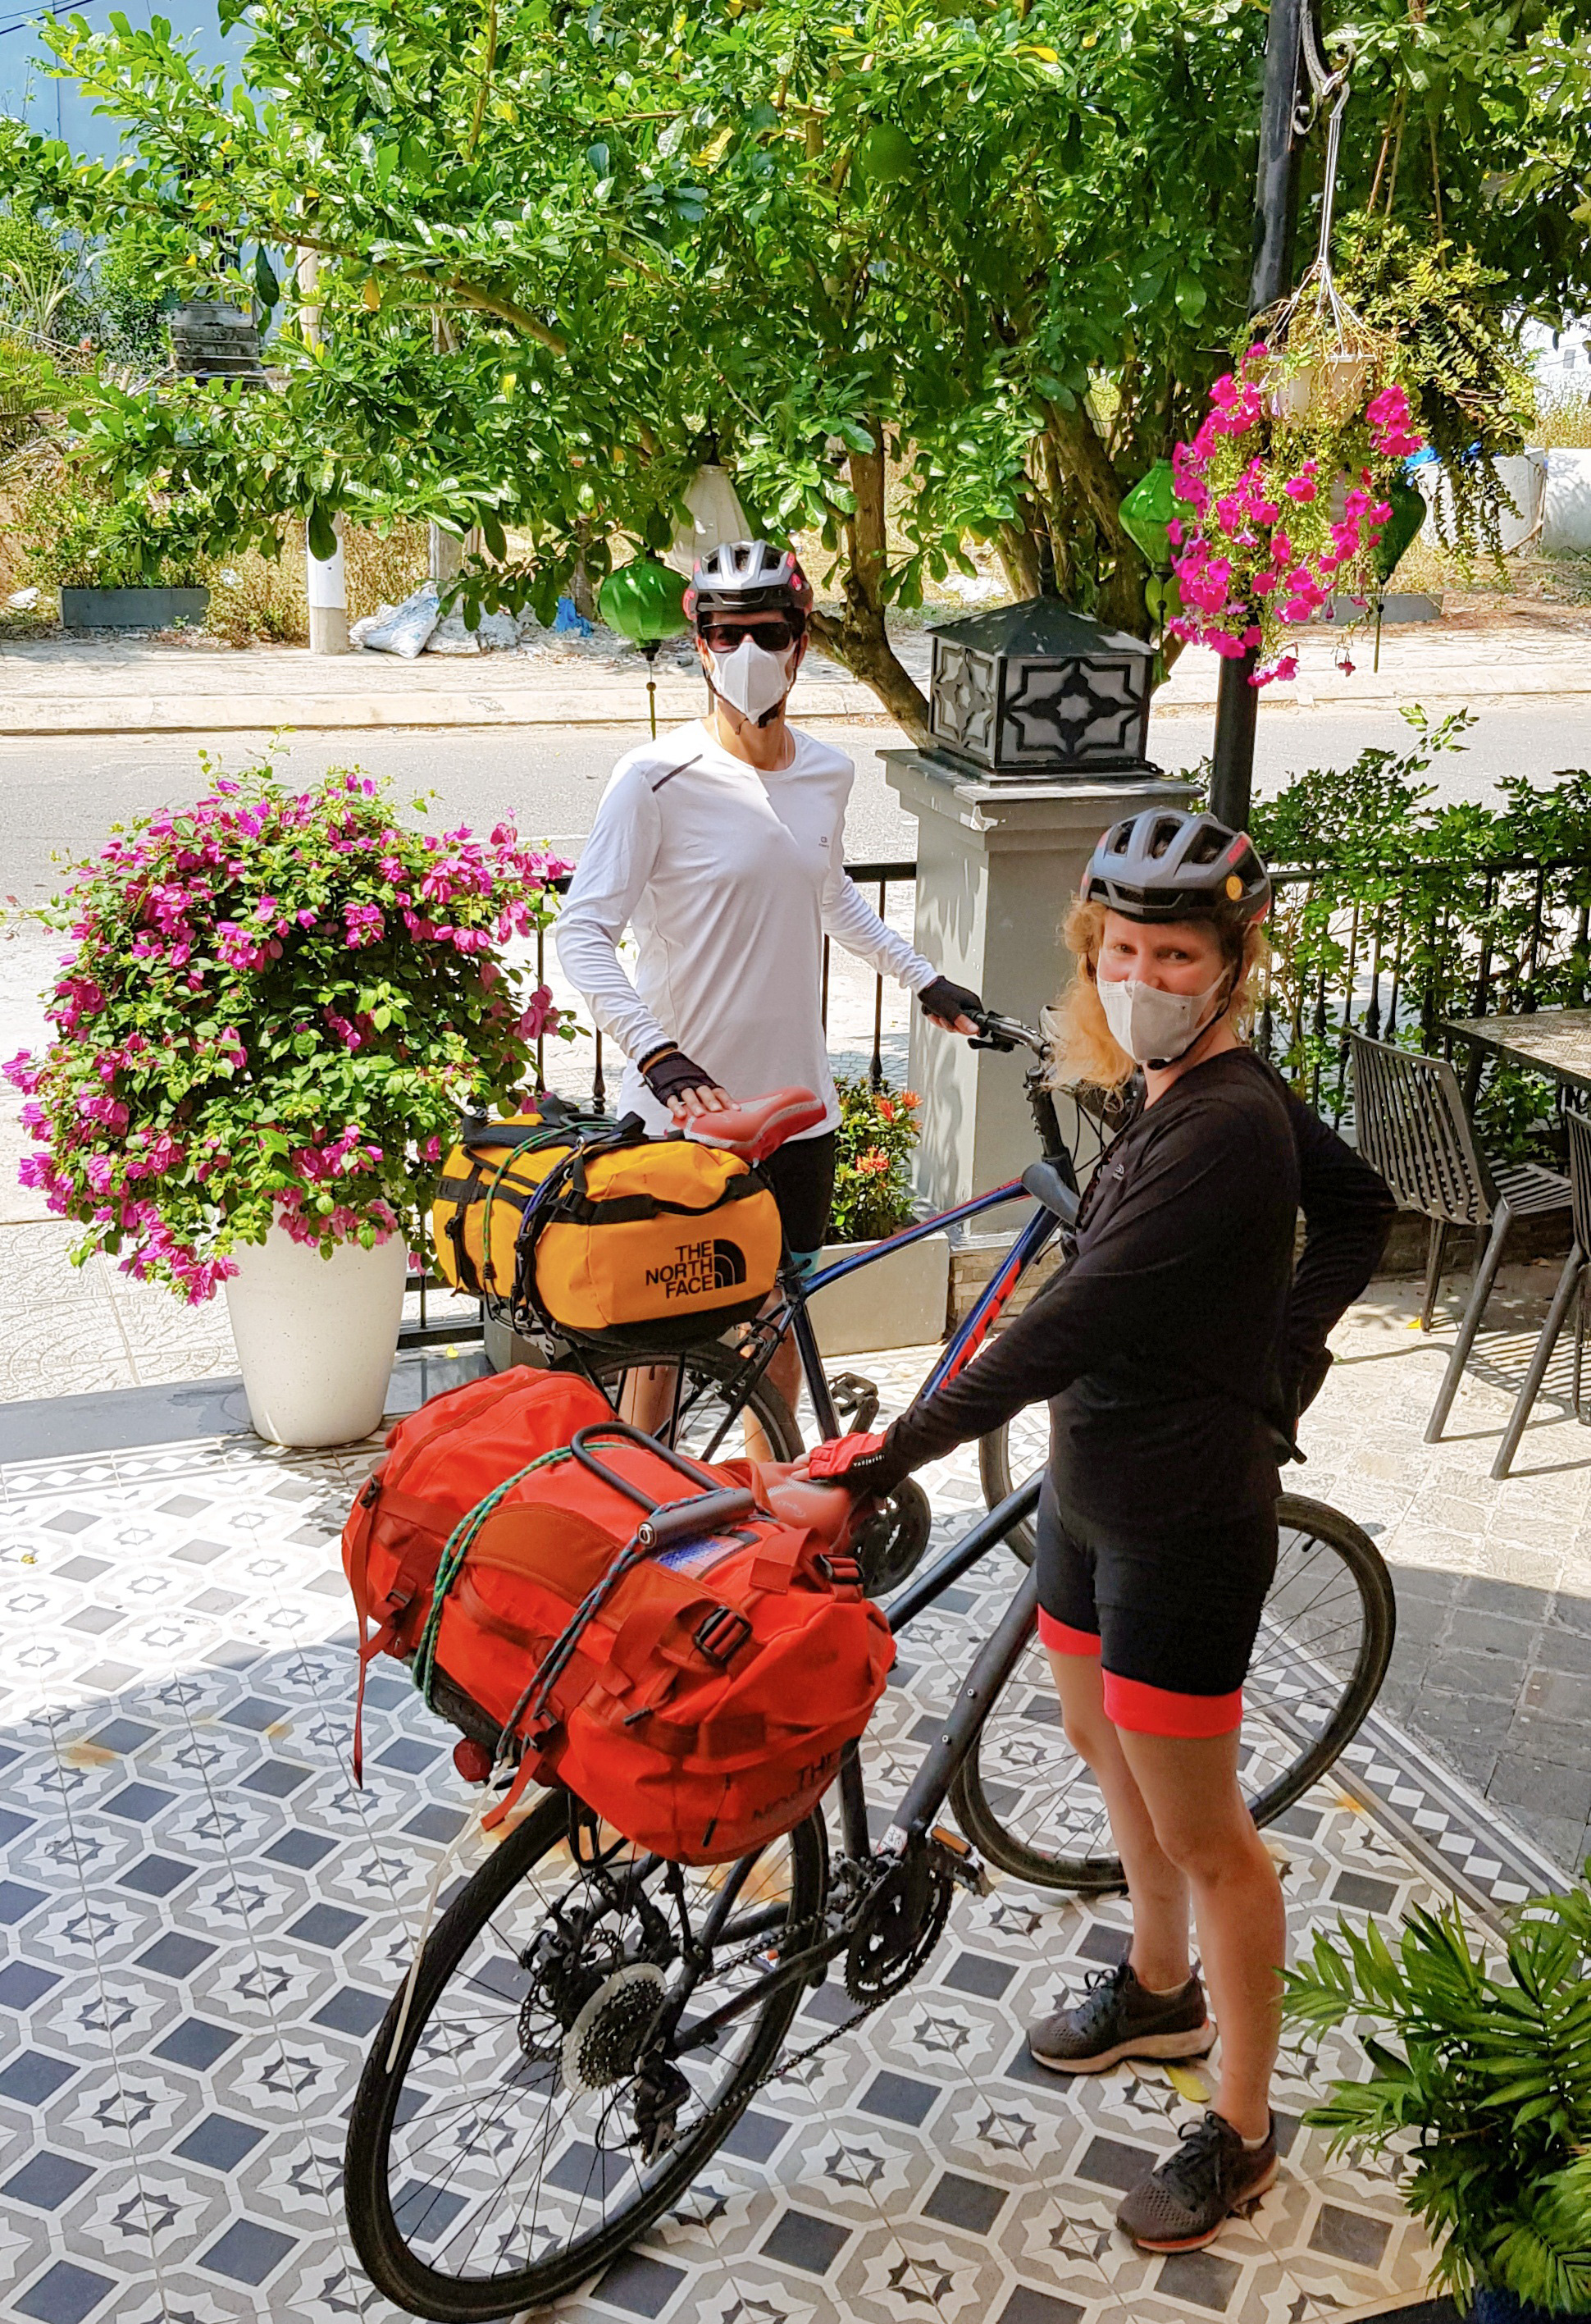 Swedish Kalbassi Christian Bahram (left) and his wife bid goodbye to their hosts after their stay at Sea Lavie Hoi An Resort & Spa in Hoi An City, Quang Nam Province, Vietnam. Photo: Quoc Viet / Tuoi Tre